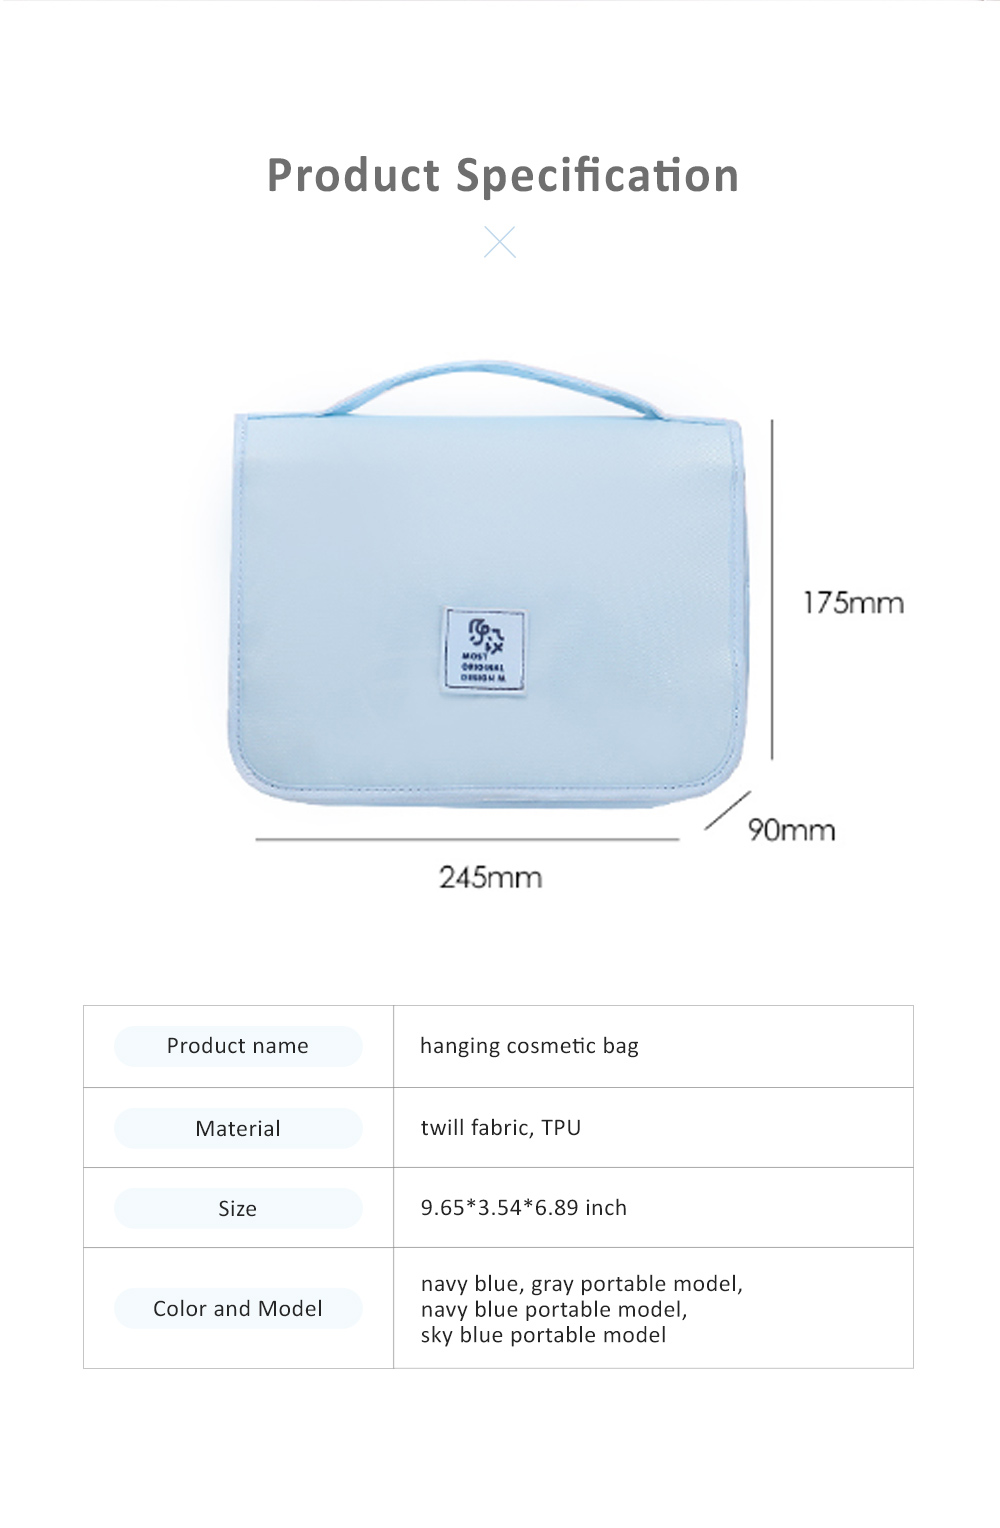 Large Capacity Waterproof Twill Fabric Makeup Cosmetic Bag, Minimalist Portable Functional Travel Toiletry Wash Storage Hanging Bag 7